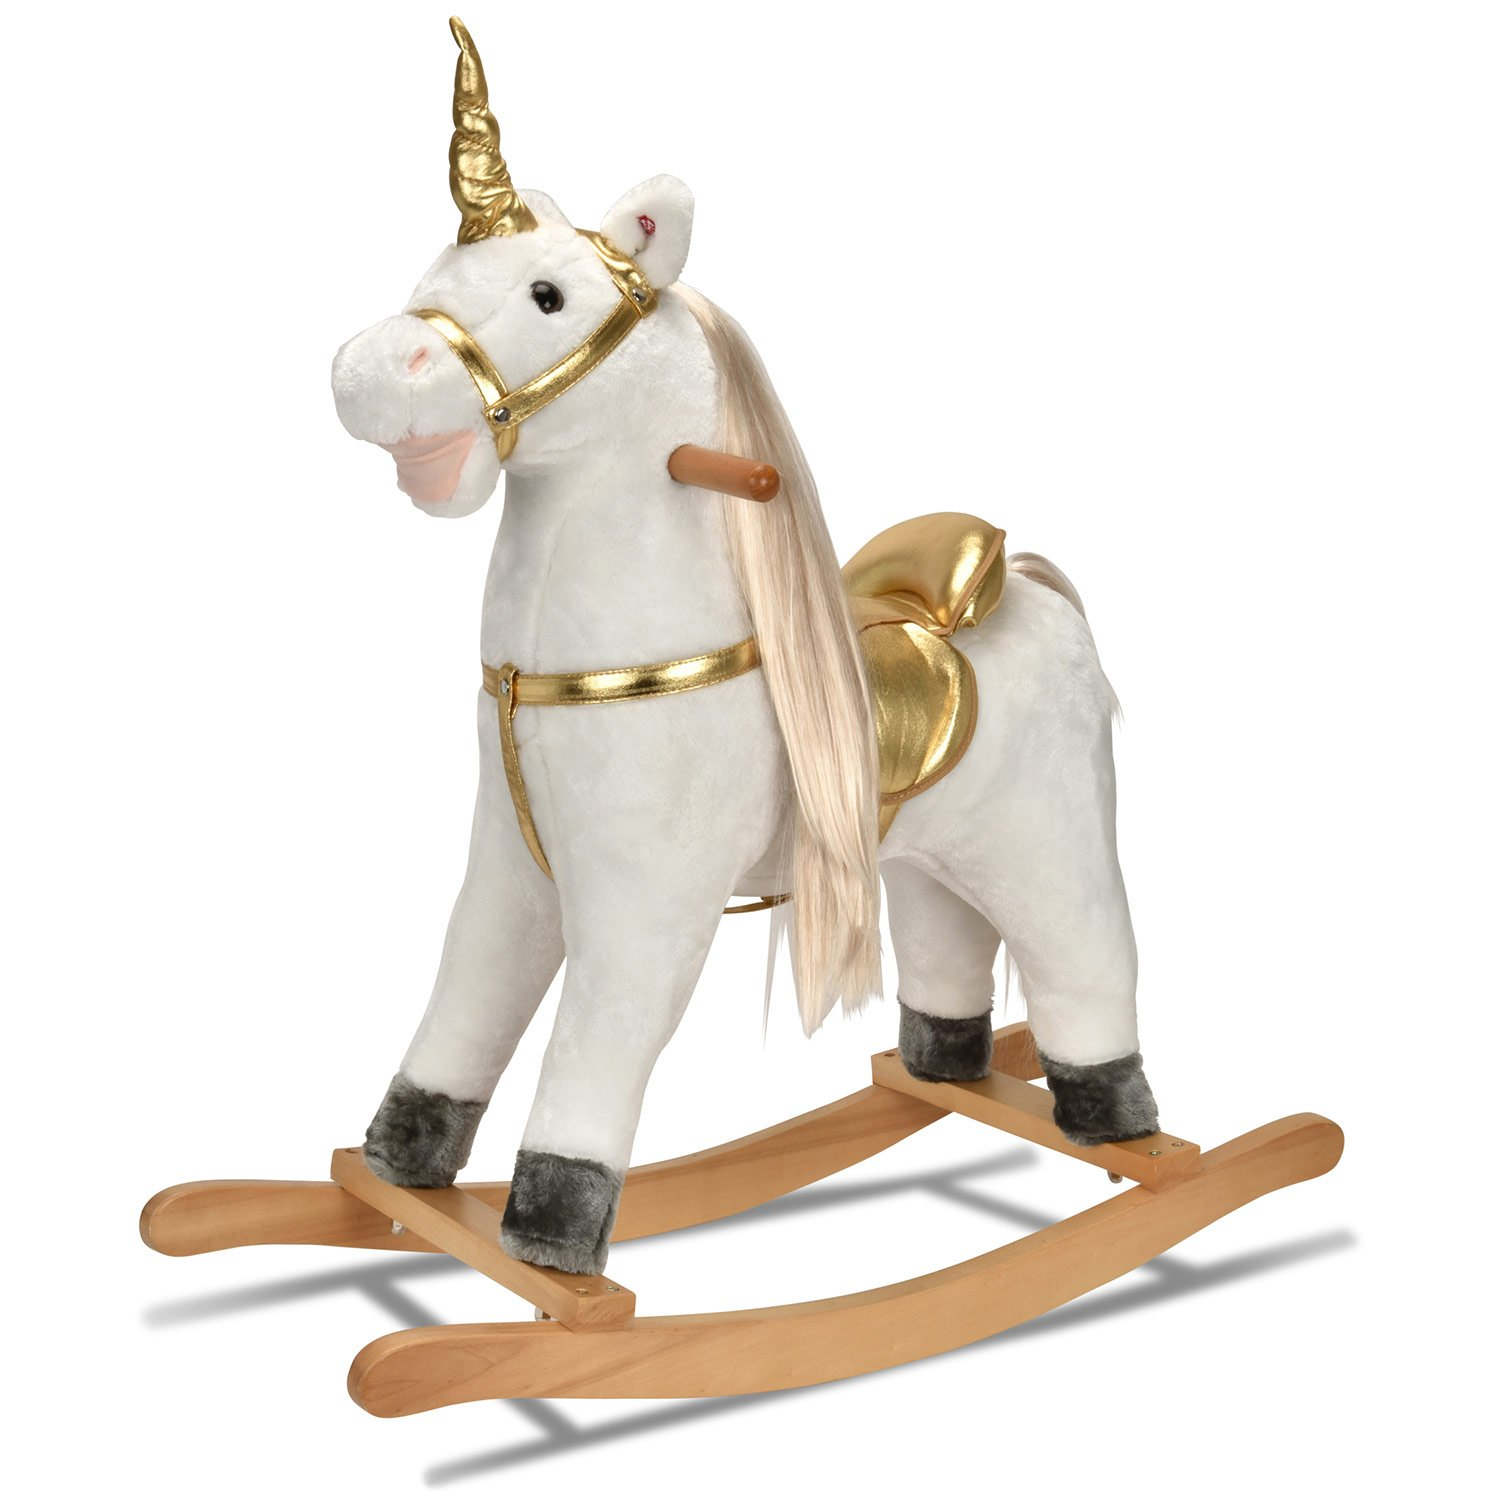 JOON UNICORN ROCKING HORSE, Designed with Soft Materials, Gold Detailing,  Blond Hair with Gold Twisted Horn, Perfect for A Magical Adventure for Your